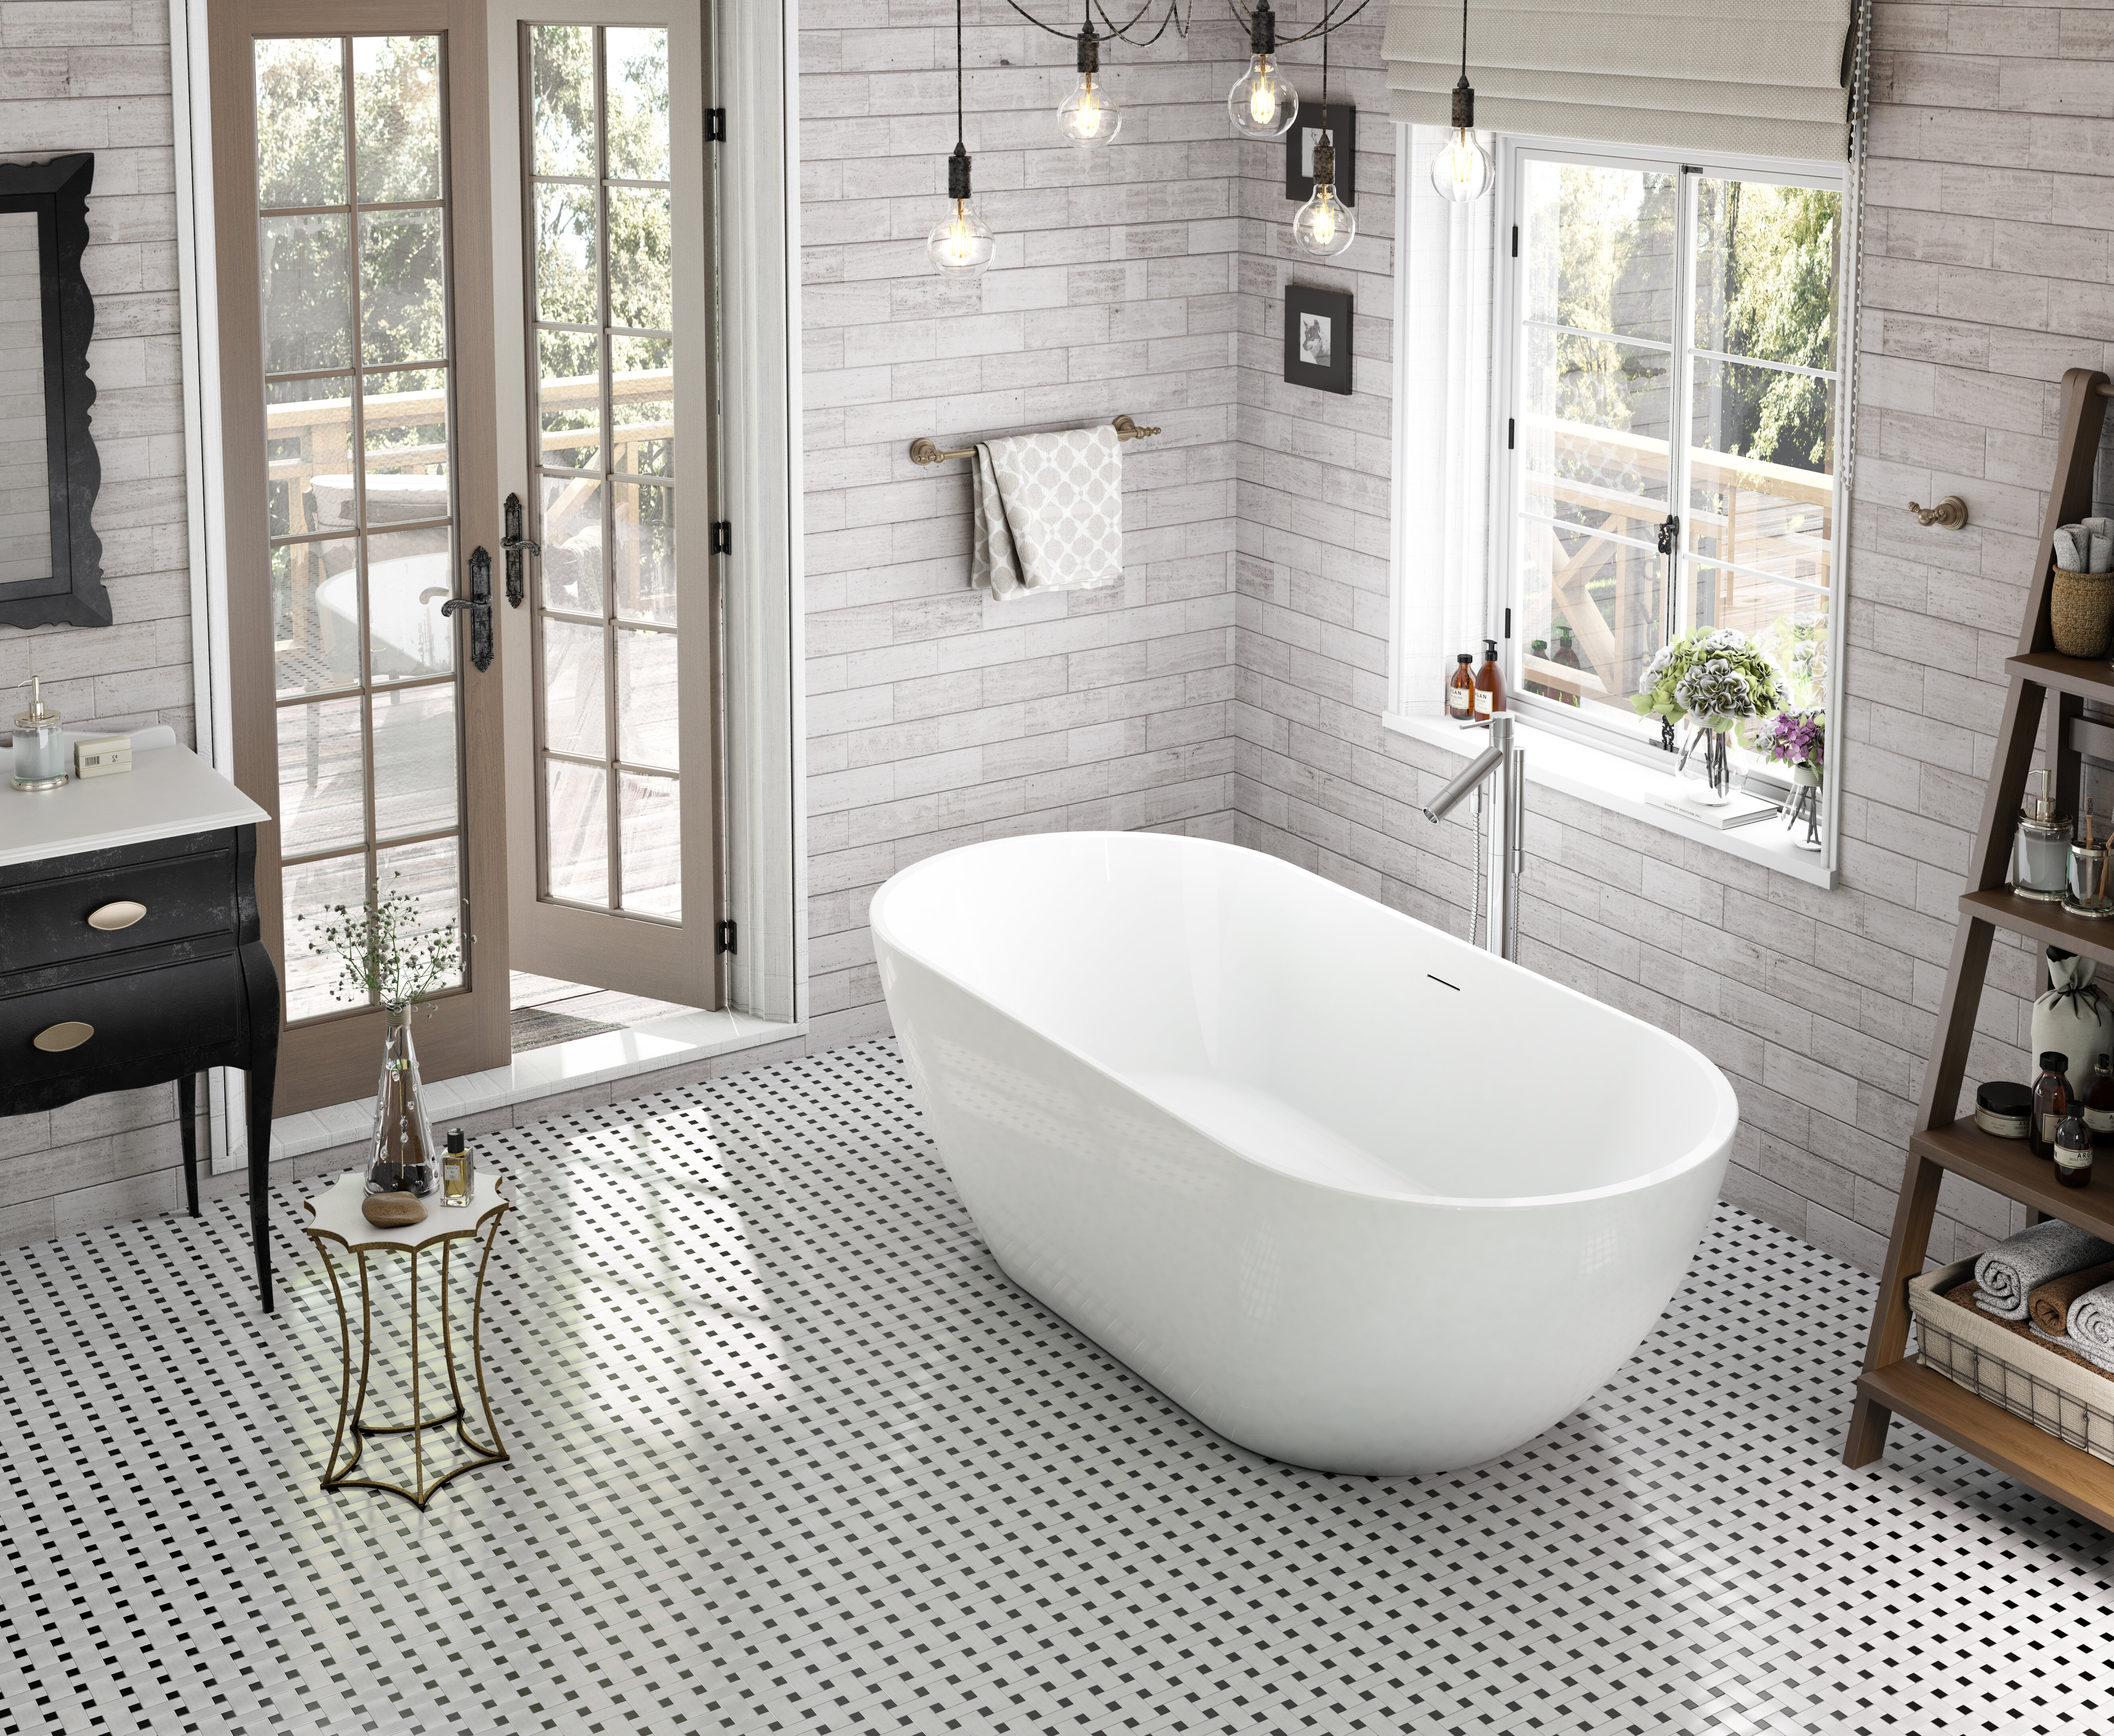 pin bathtub ball atop has tub a shape claw cast classic situated bathtubs graceful slipper lines with feet clawfoot the iron erica wyndham